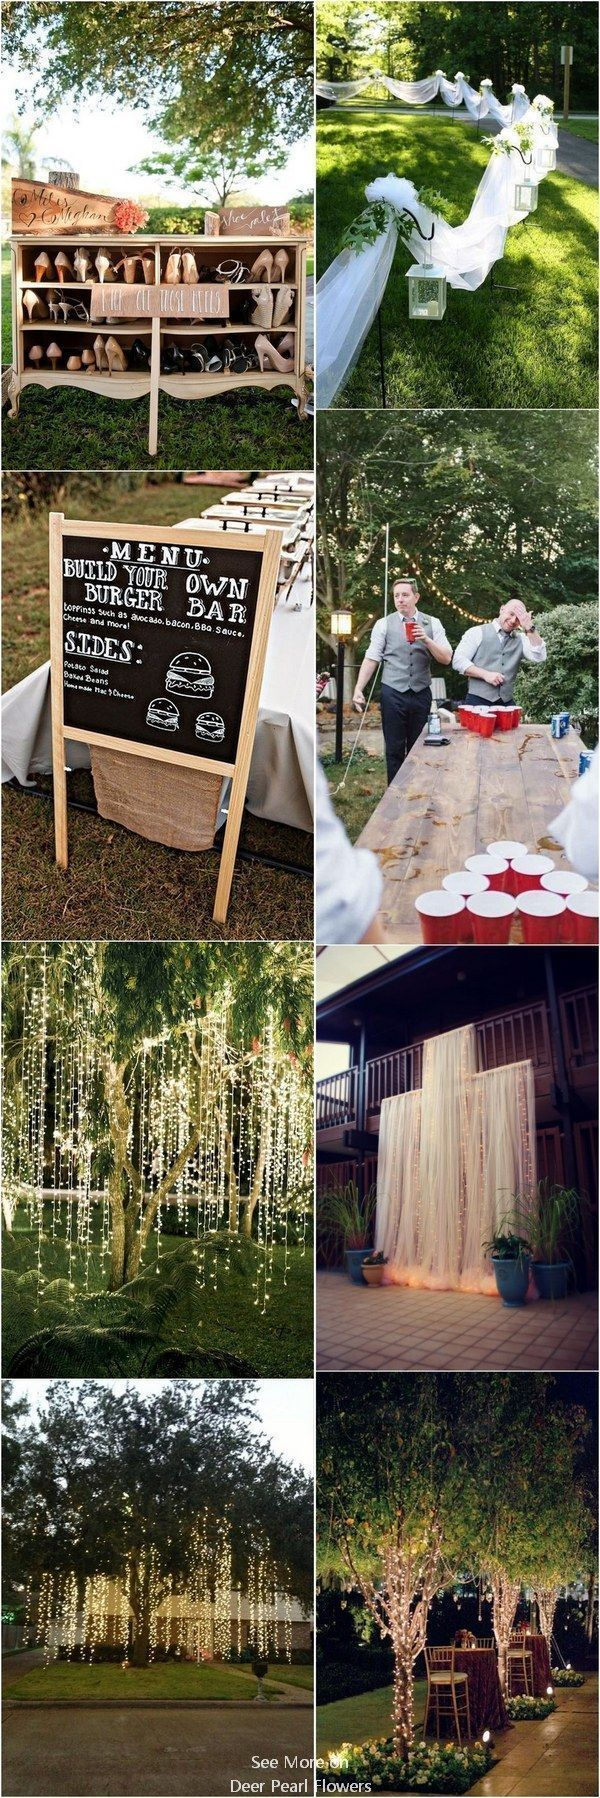 Wedding decorations outside house  Pin by Kine W Kvamsdal on Wedinspo  Pinterest  Wedding Wedding